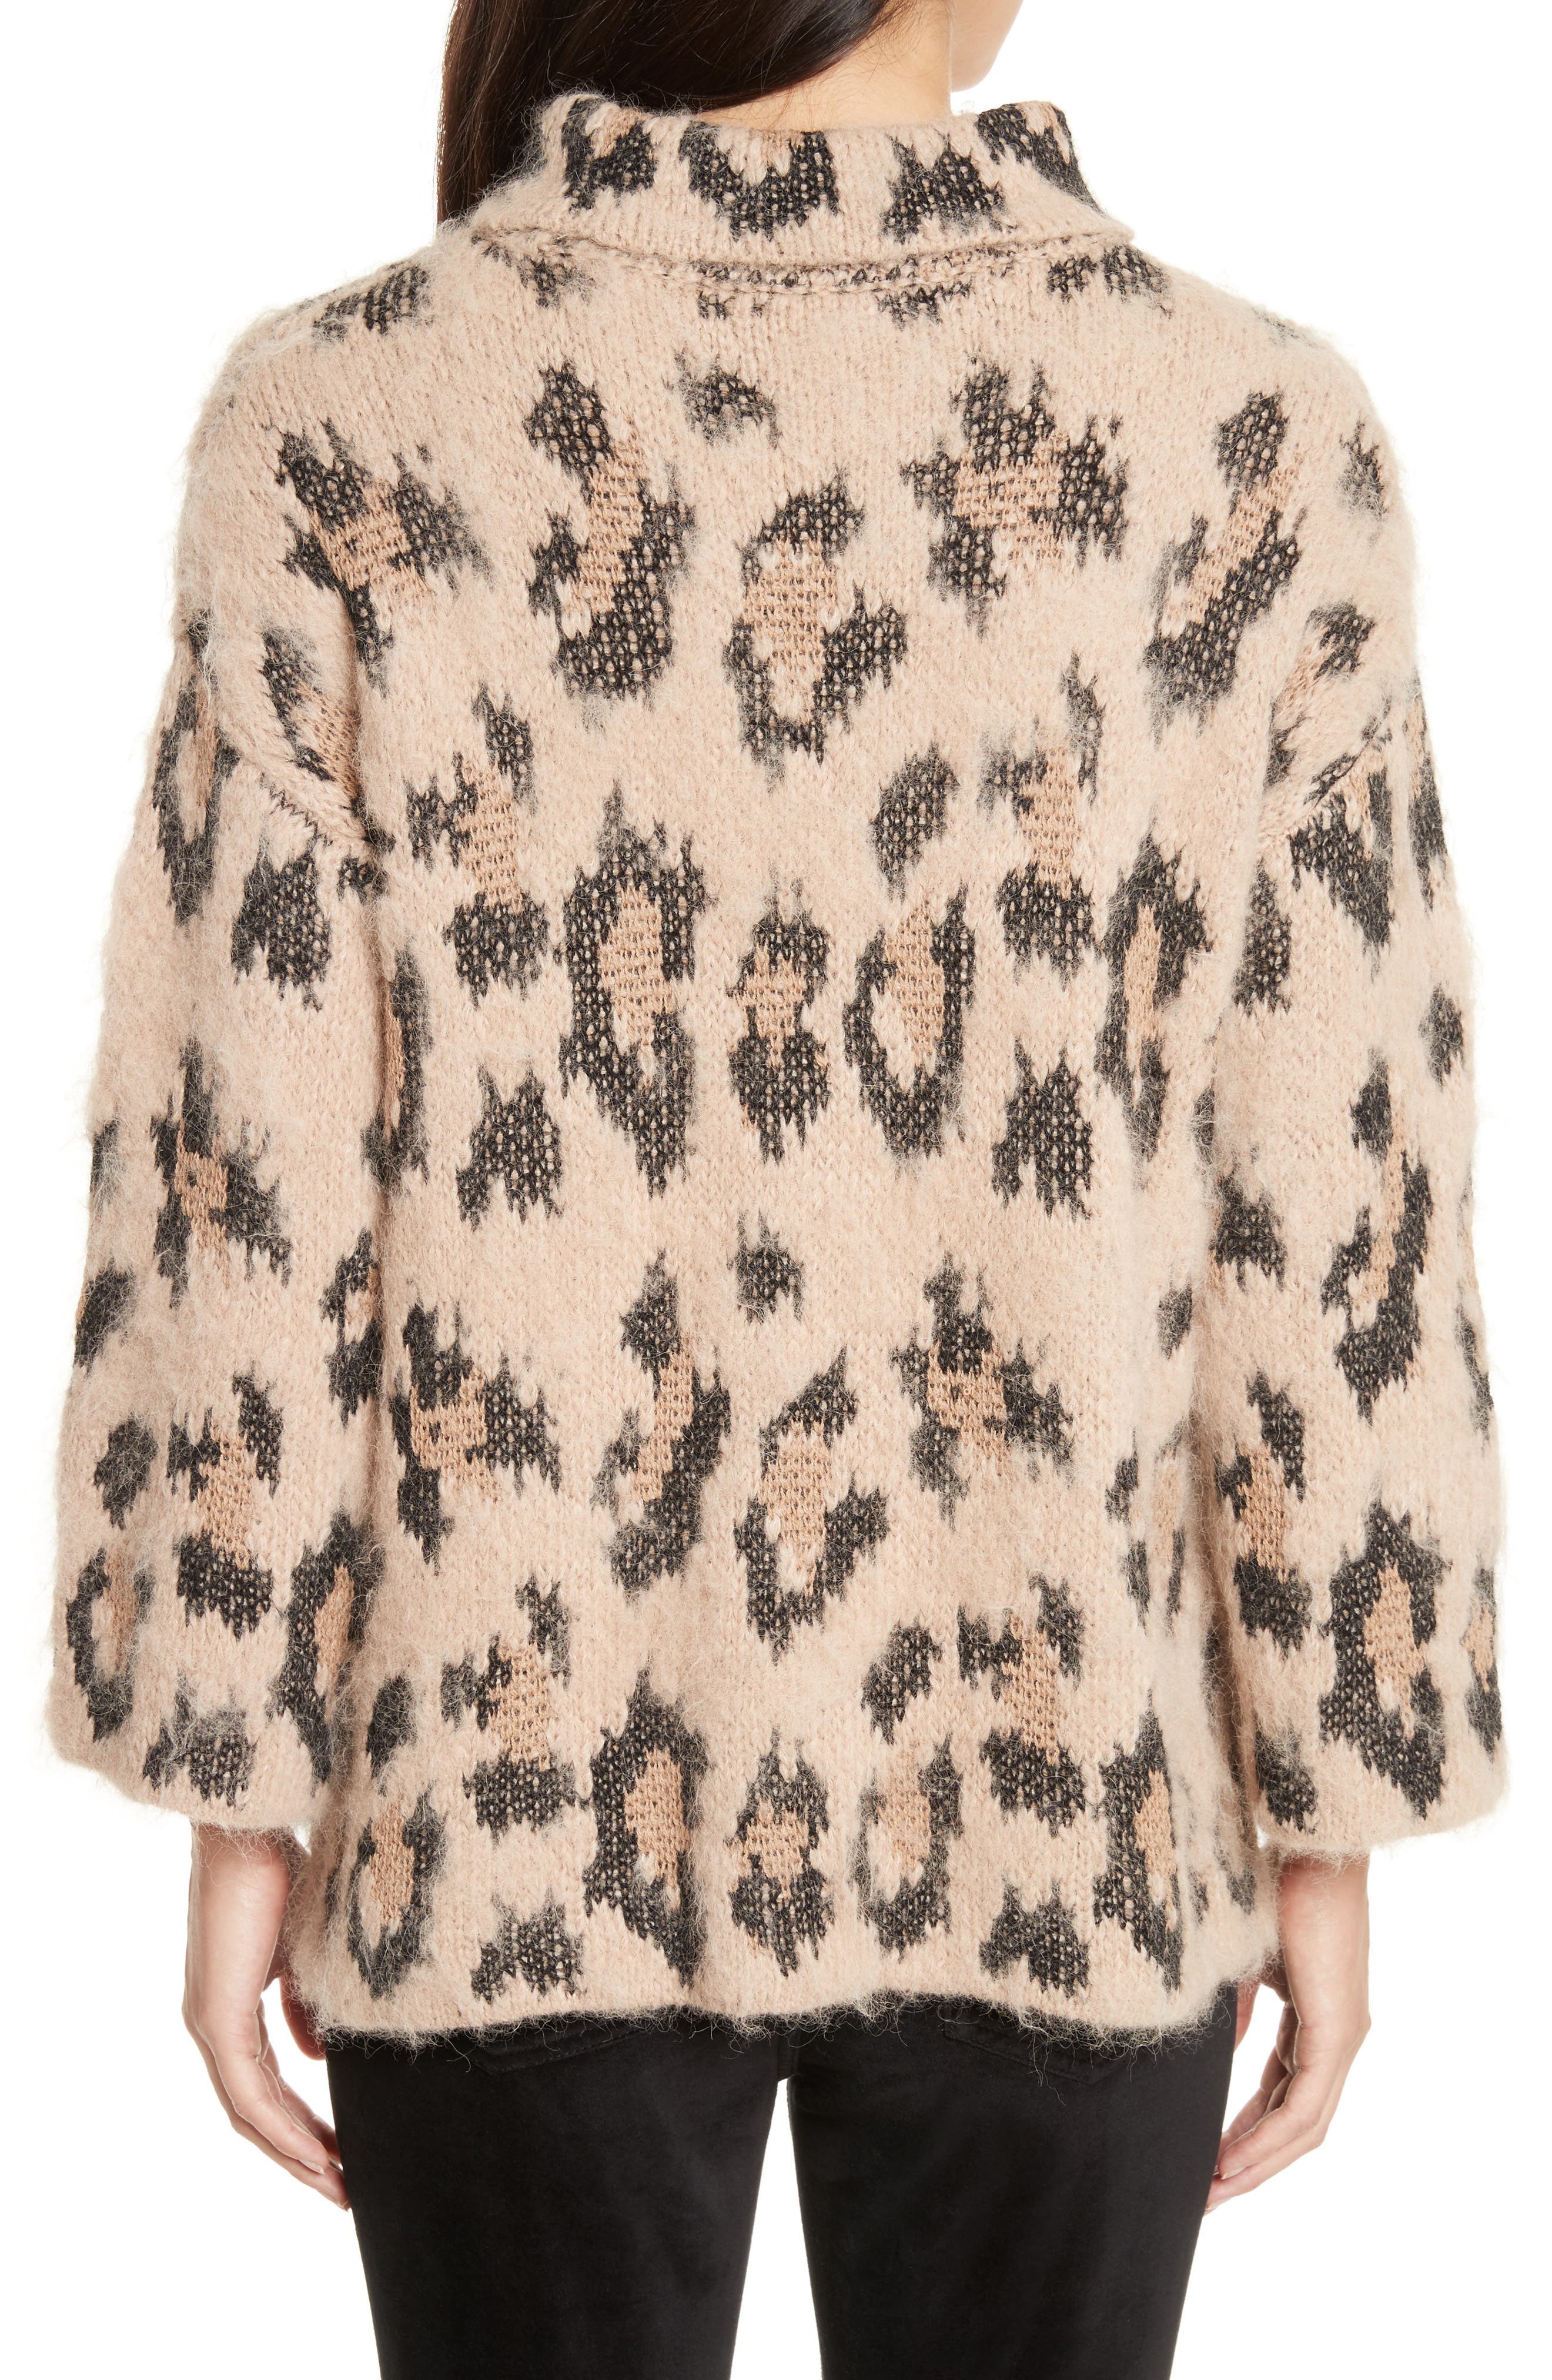 leopard print chunky sweater,                             Alternate thumbnail 2, color,                             206